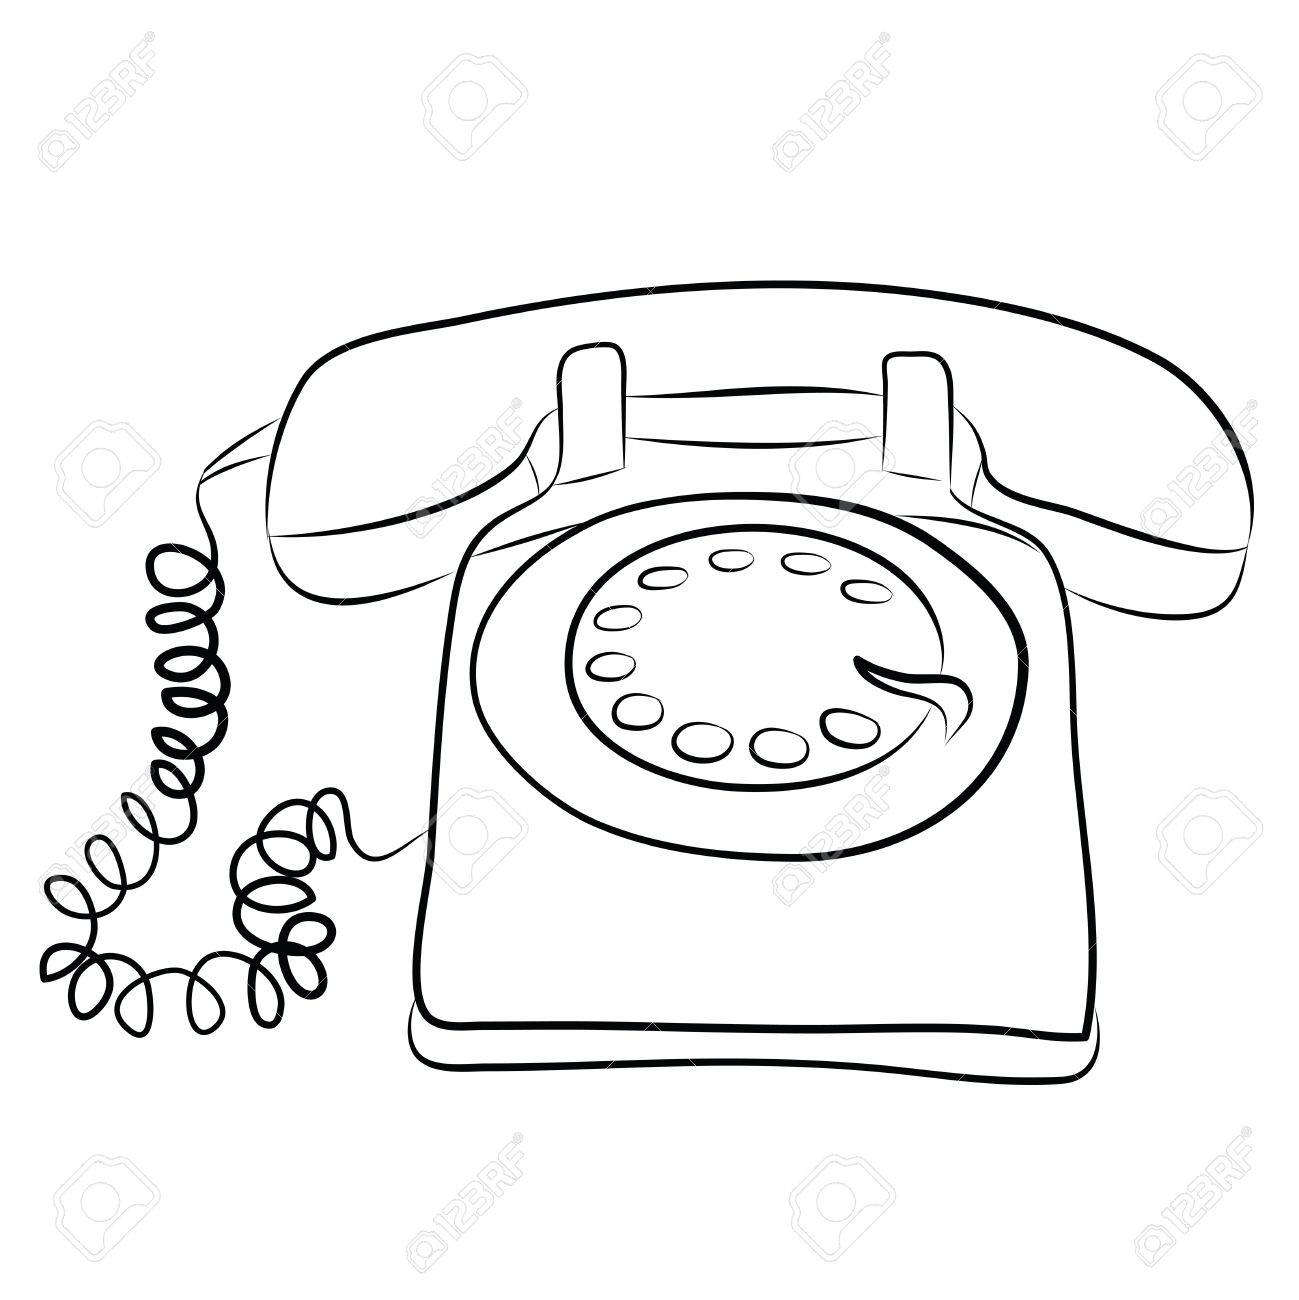 old telephone drawing at getdrawings com